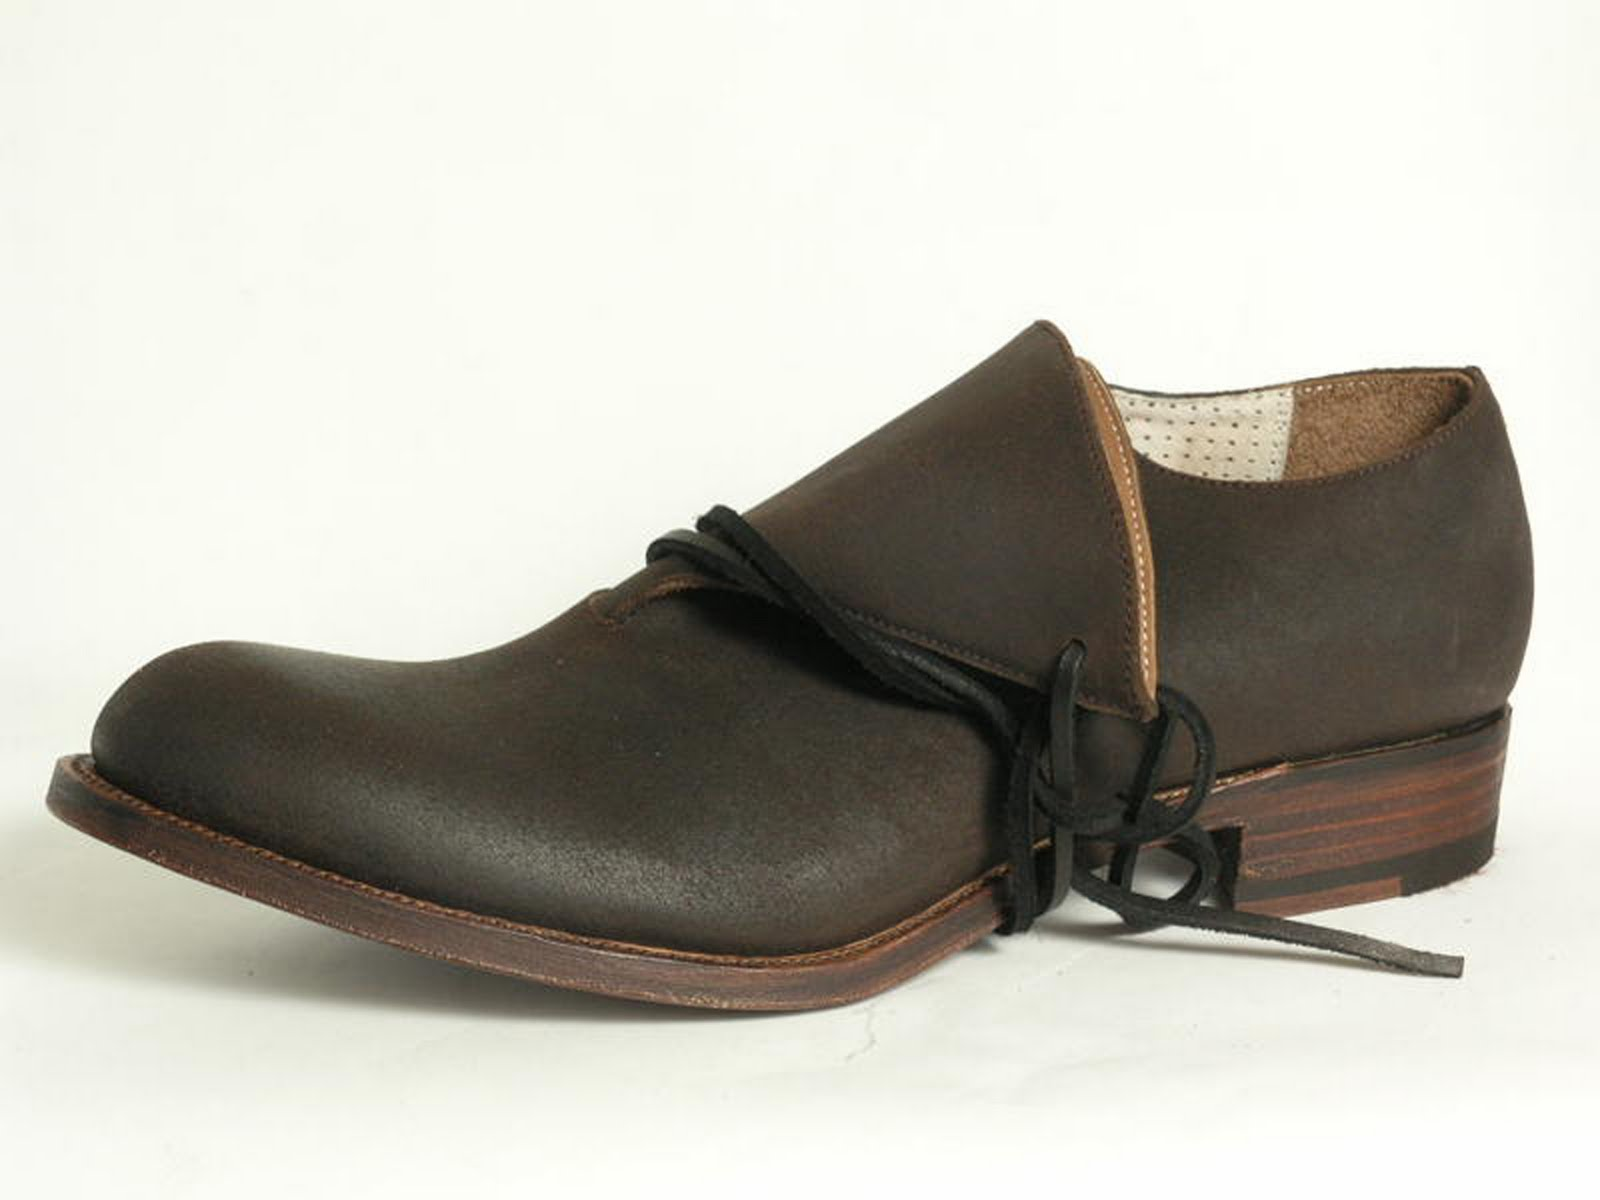 Andrew McDonald Shoemaker AW11 Collection